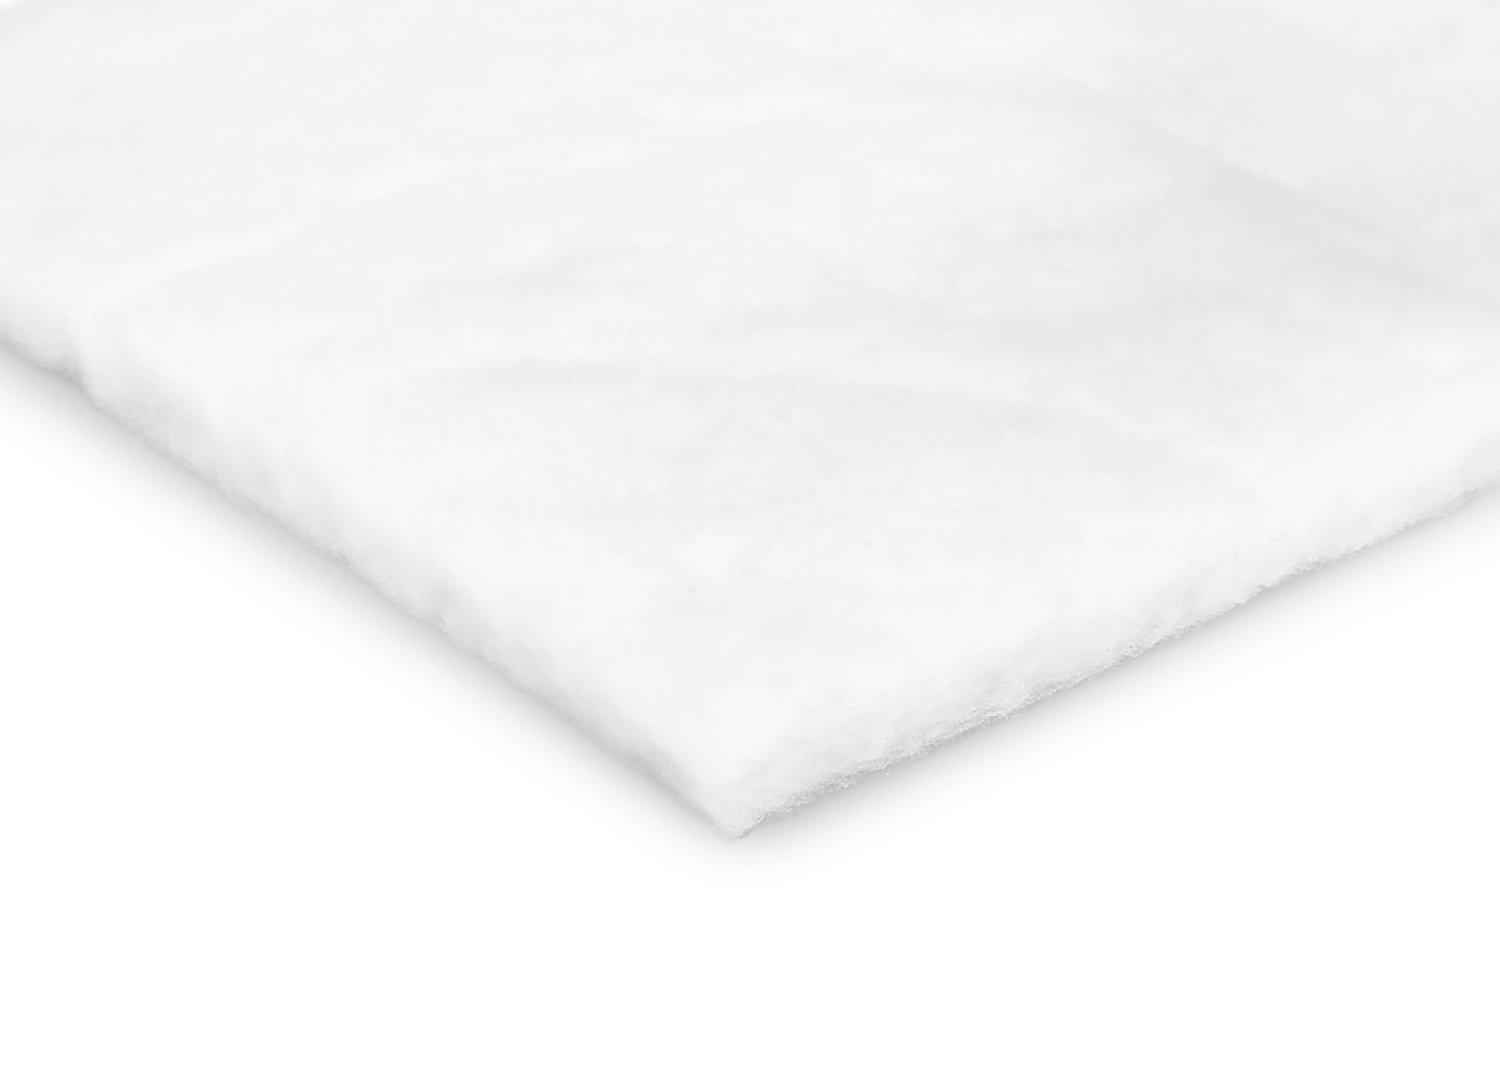 Durable Polyester Quilt Batting – Fluffy and Warm – Thick and Lightweight - 60 inches Wide - Machine Washable - For Indoor and Outdoor Use - Large Variety of Yard Cut Sizes (1 yard) Bonnybundle BBQB